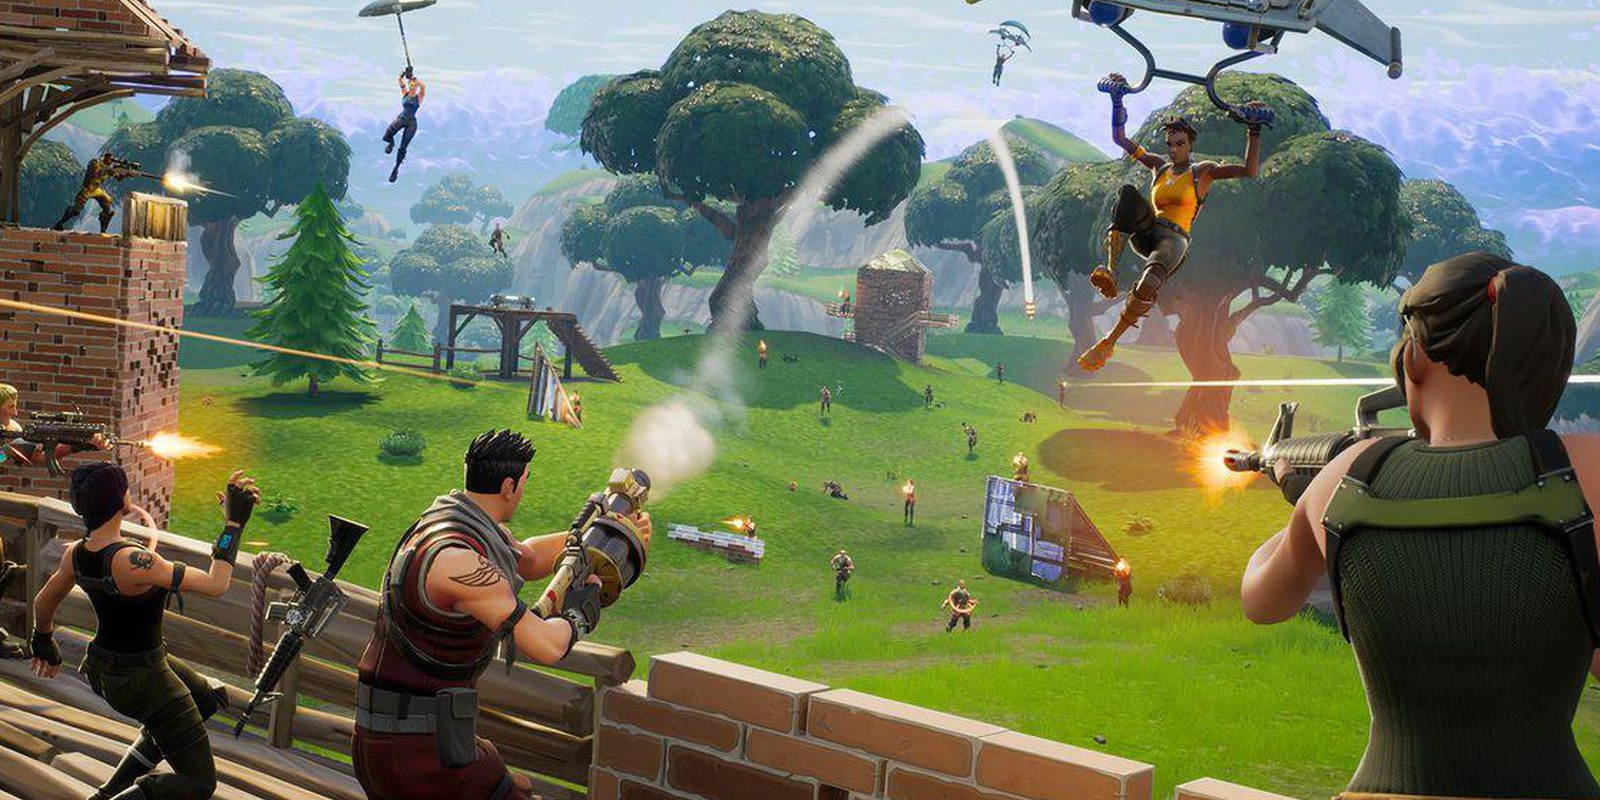 Fortnite For Android Will Require Apk Install And Skip Google Play